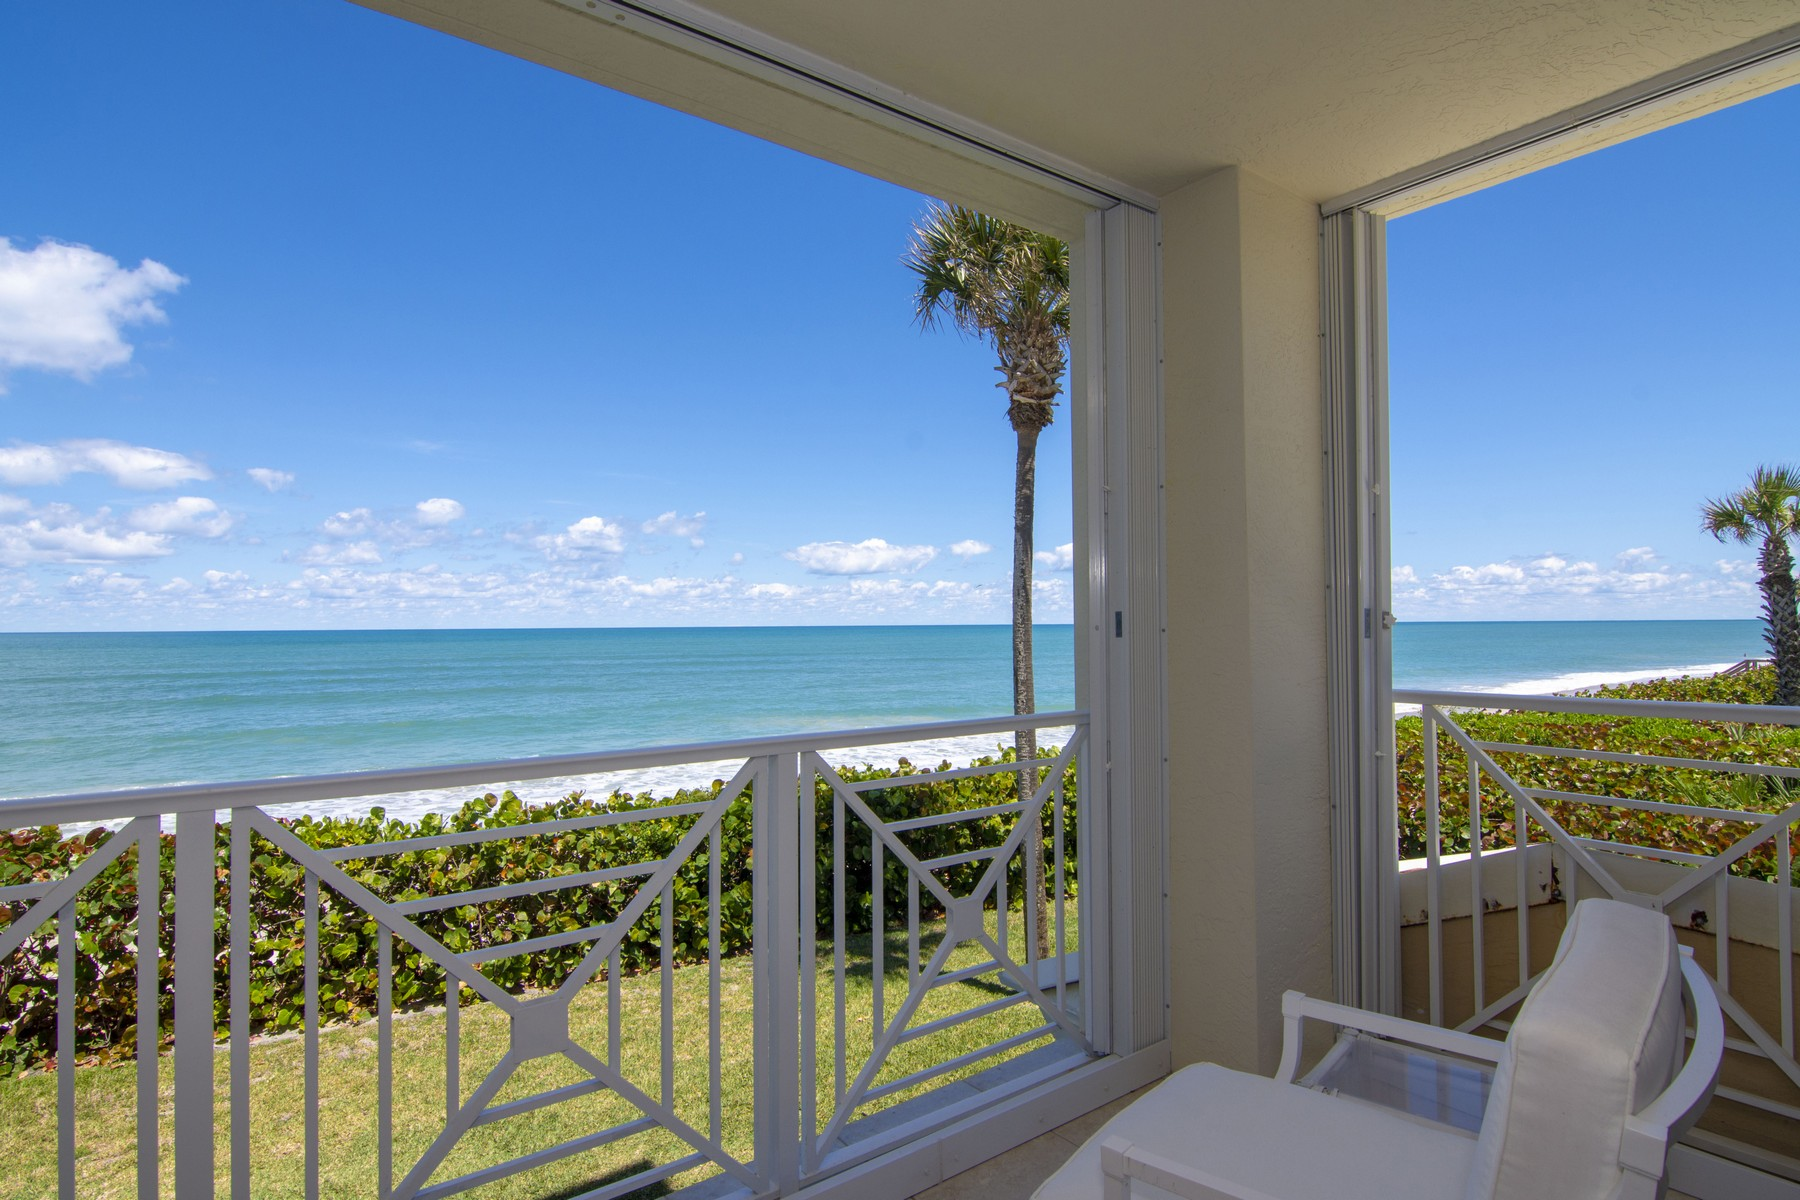 Condominium for Sale at Spectacular Oceanfront Condo 8890 N SEA OAKS WAY #102 Vero Beach, Florida 32963 United States